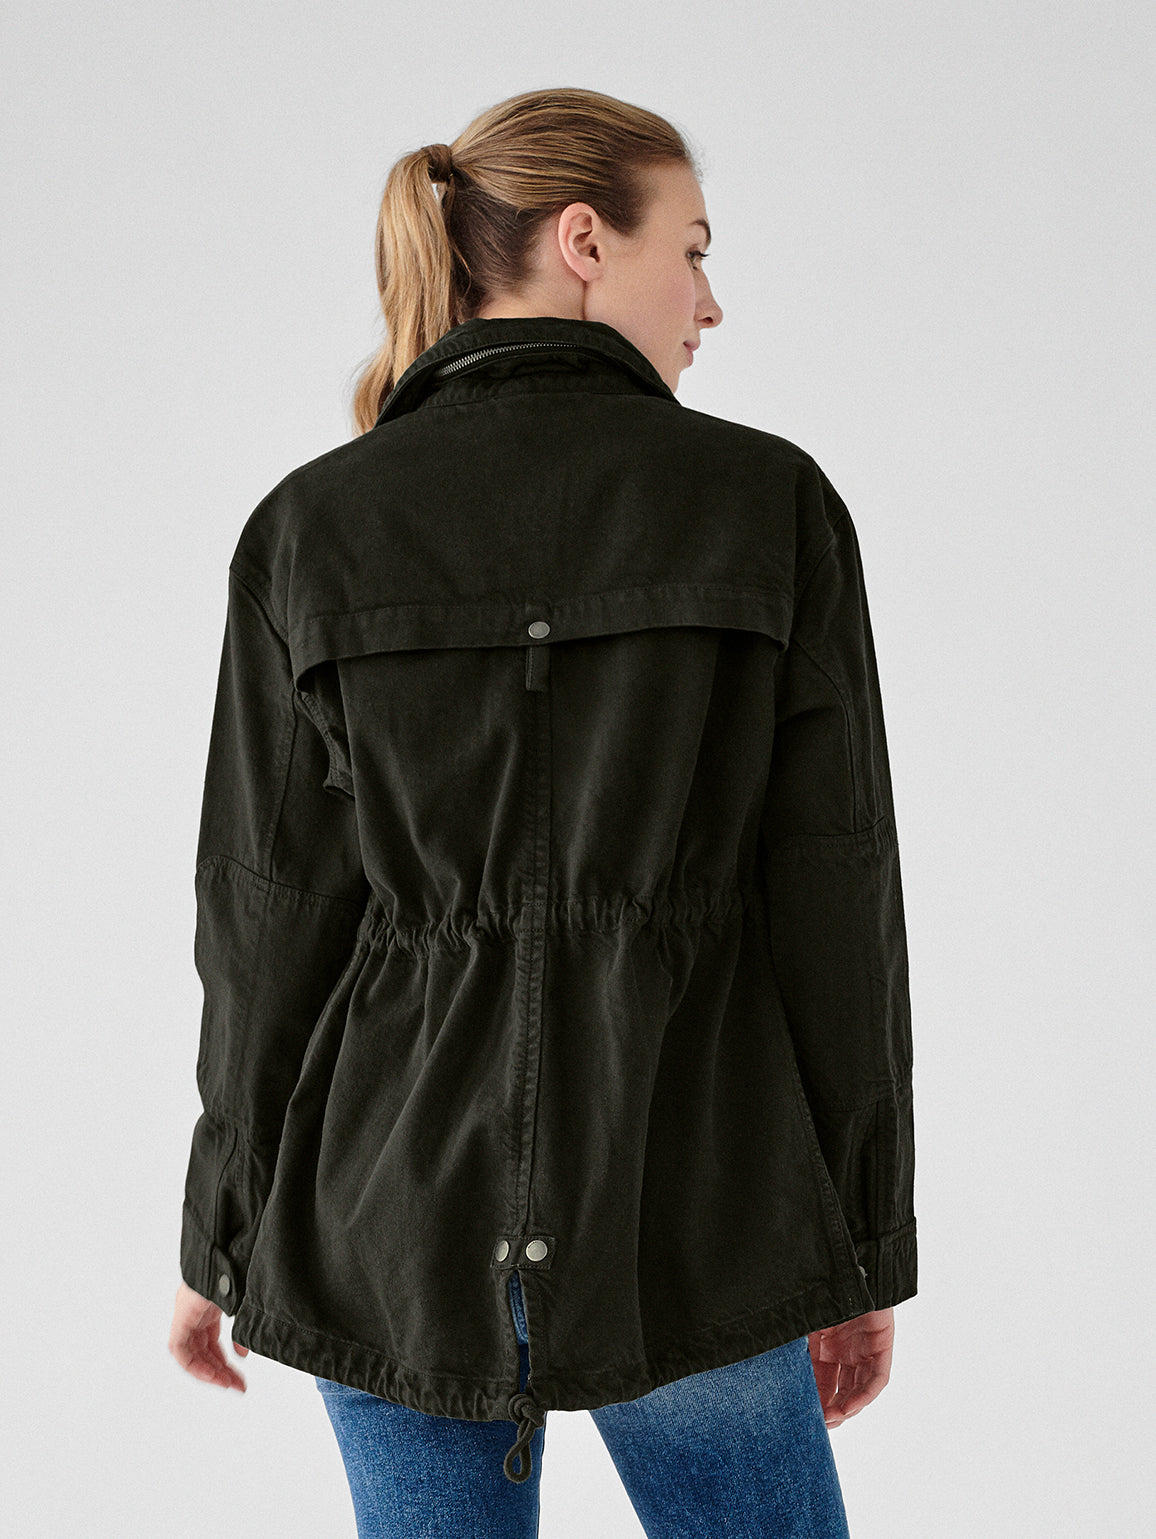 Howard St Jacket | Forester